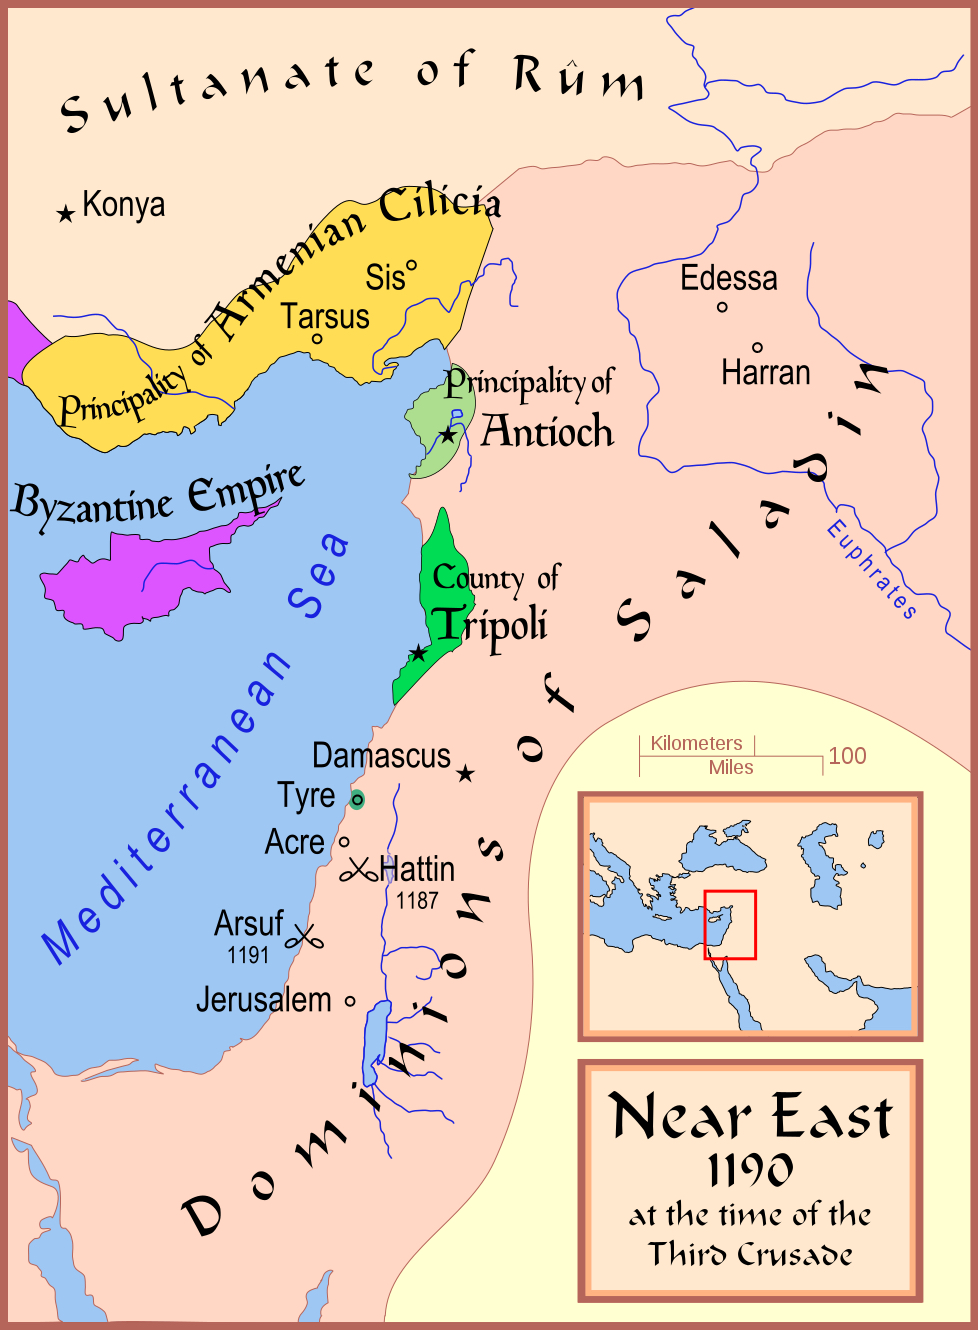 Newsela saladin muslim hero of the crusades a map showing part of the middle east in 1190 click to enlarge gumiabroncs Gallery